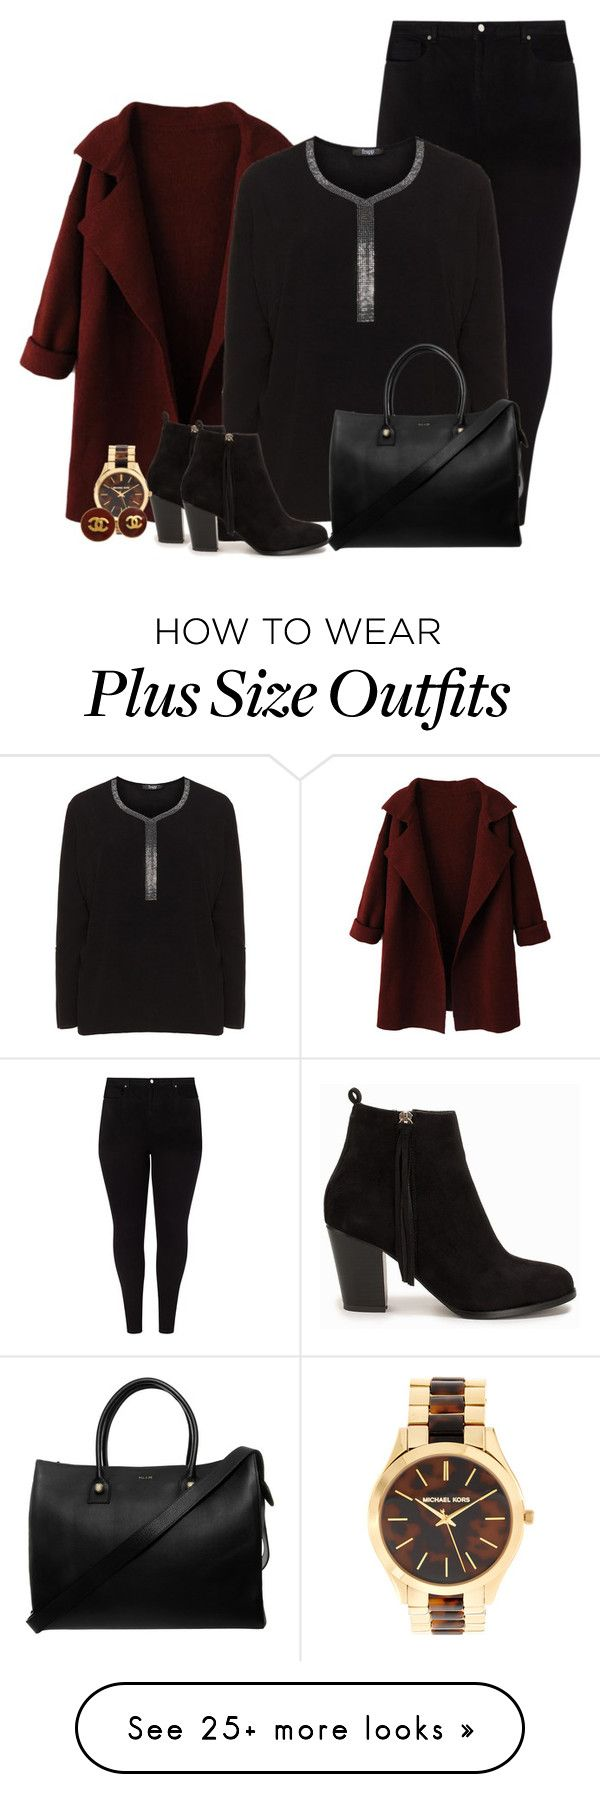 """""""plus size outfit"""" by hitthisfeeling on Polyvore featuring Studio 8, Frapp, Nly Shoes, Michael Kors, Chanel, Paul & Joe, plussize and plussizefashion"""